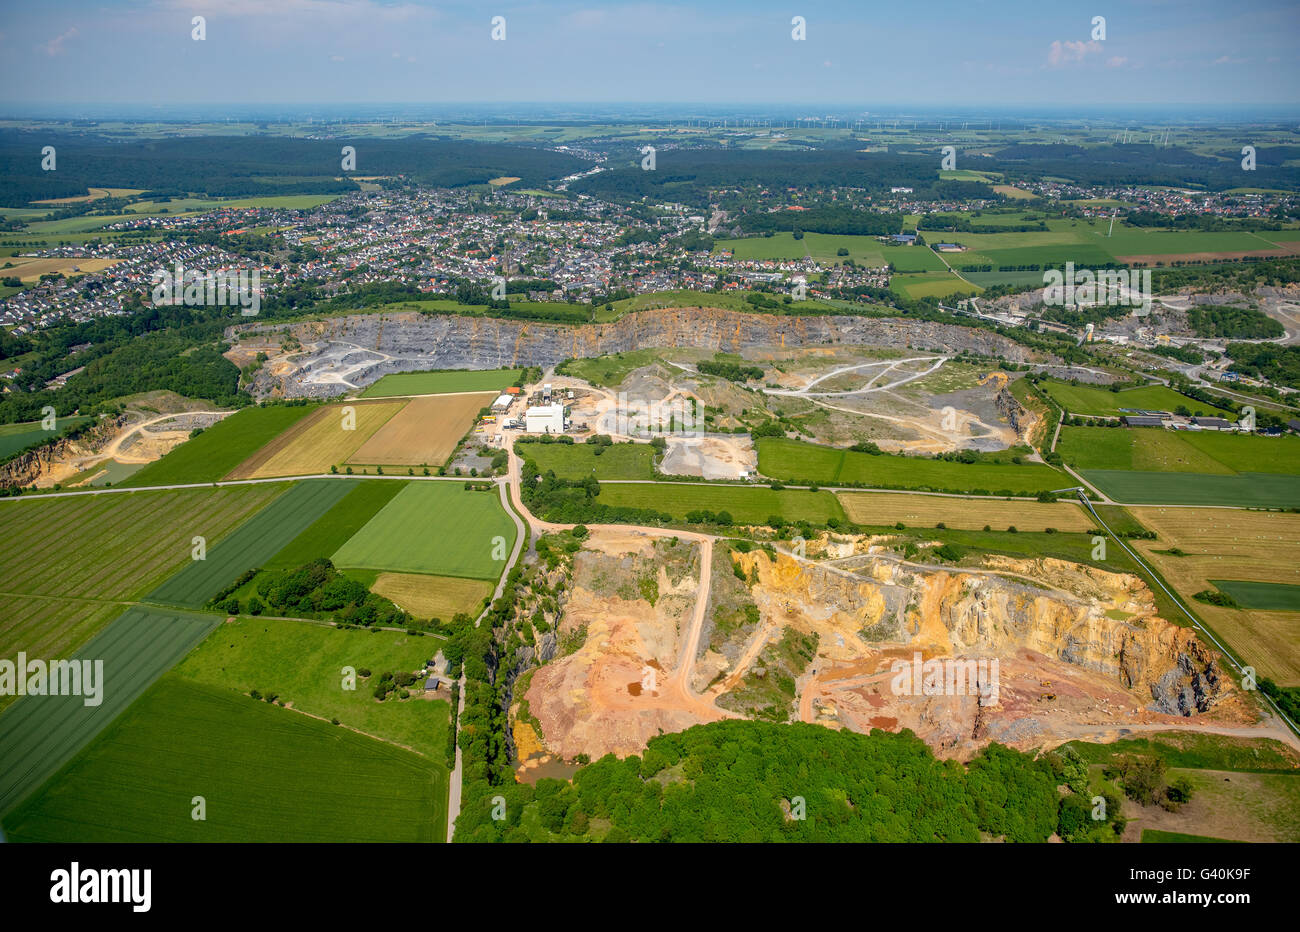 Aerial view, Warsteiner quarries, Warsteiner quarry Nuttlar path, Warstein, the Sauerland region, North Rhine-Westphalia, - Stock Image